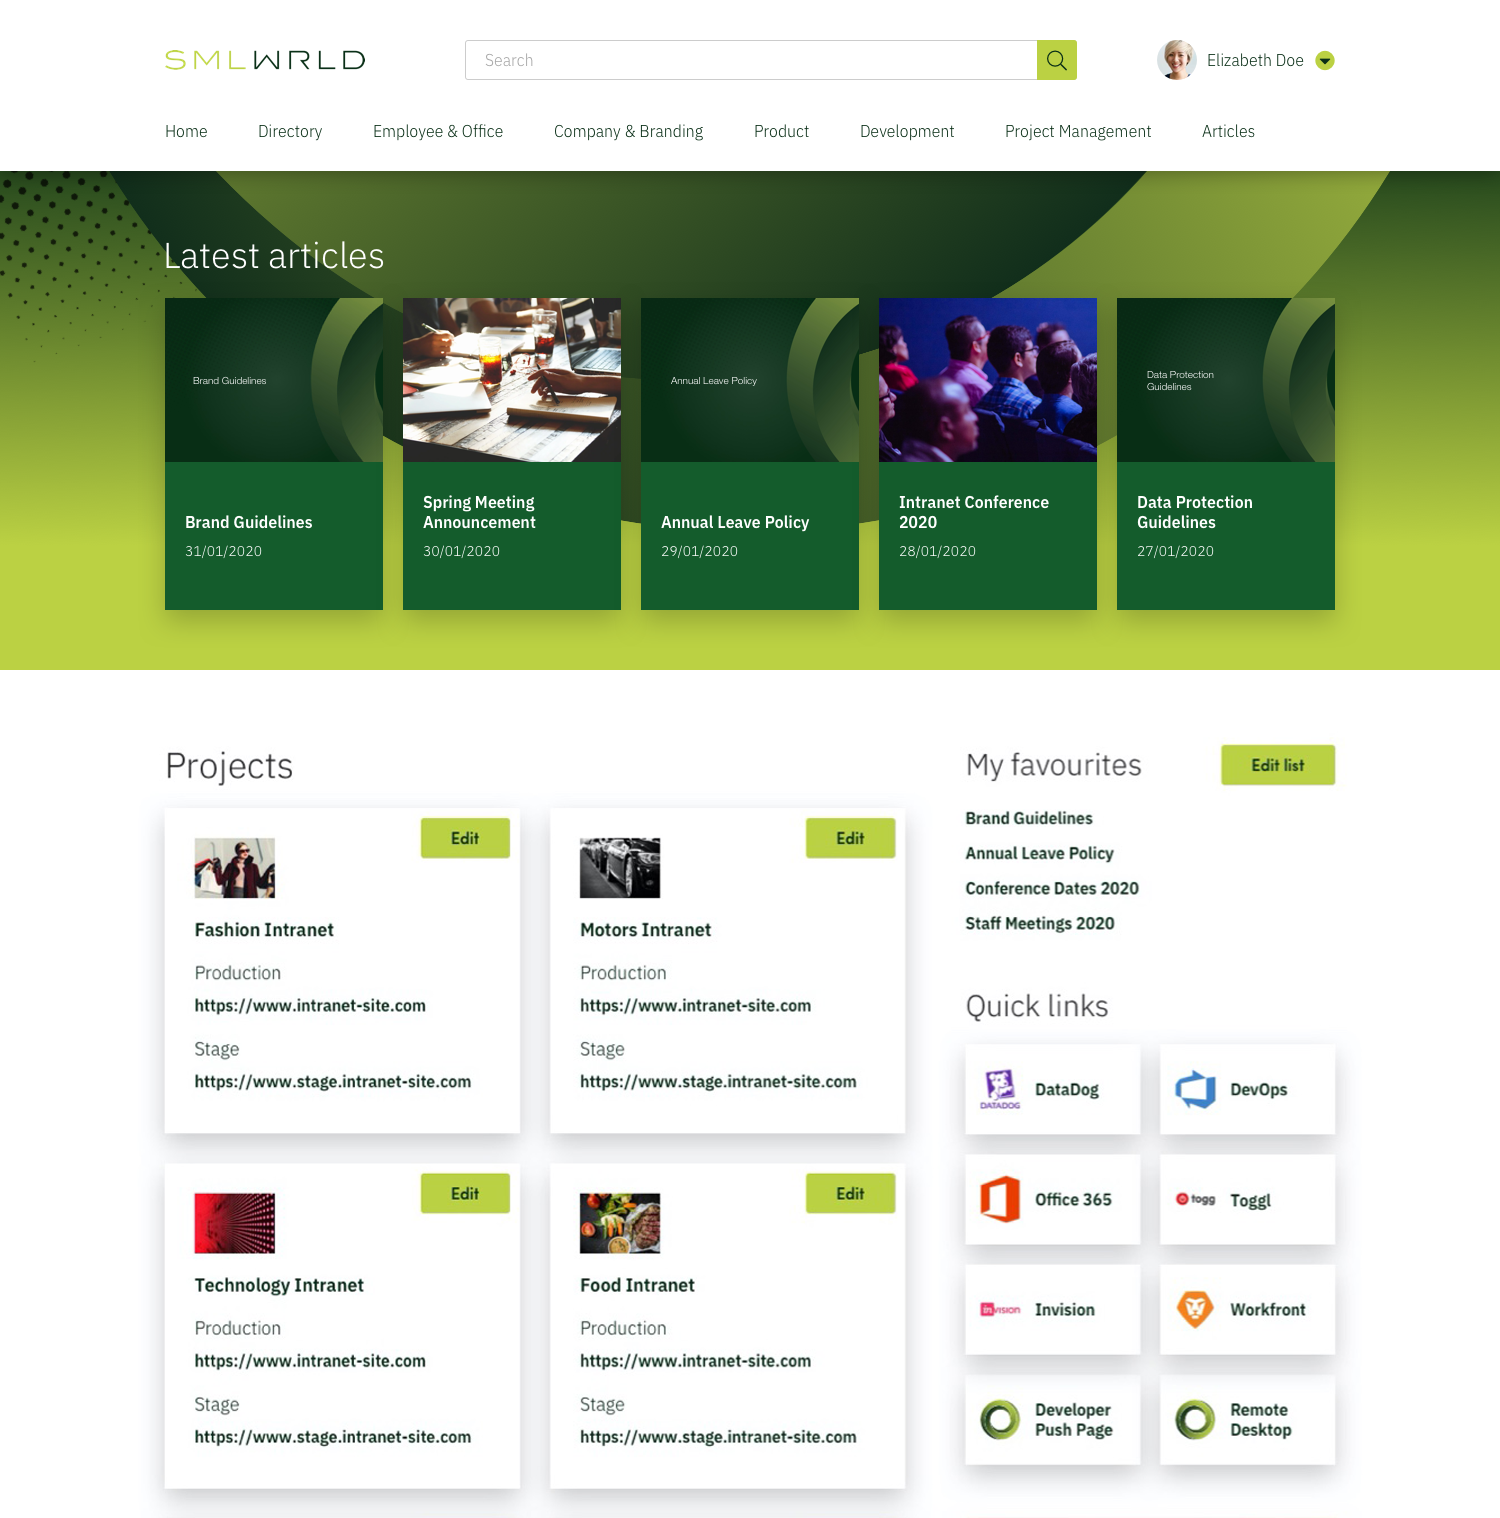 SMLWRLD-Essential-Homepage-Top.png